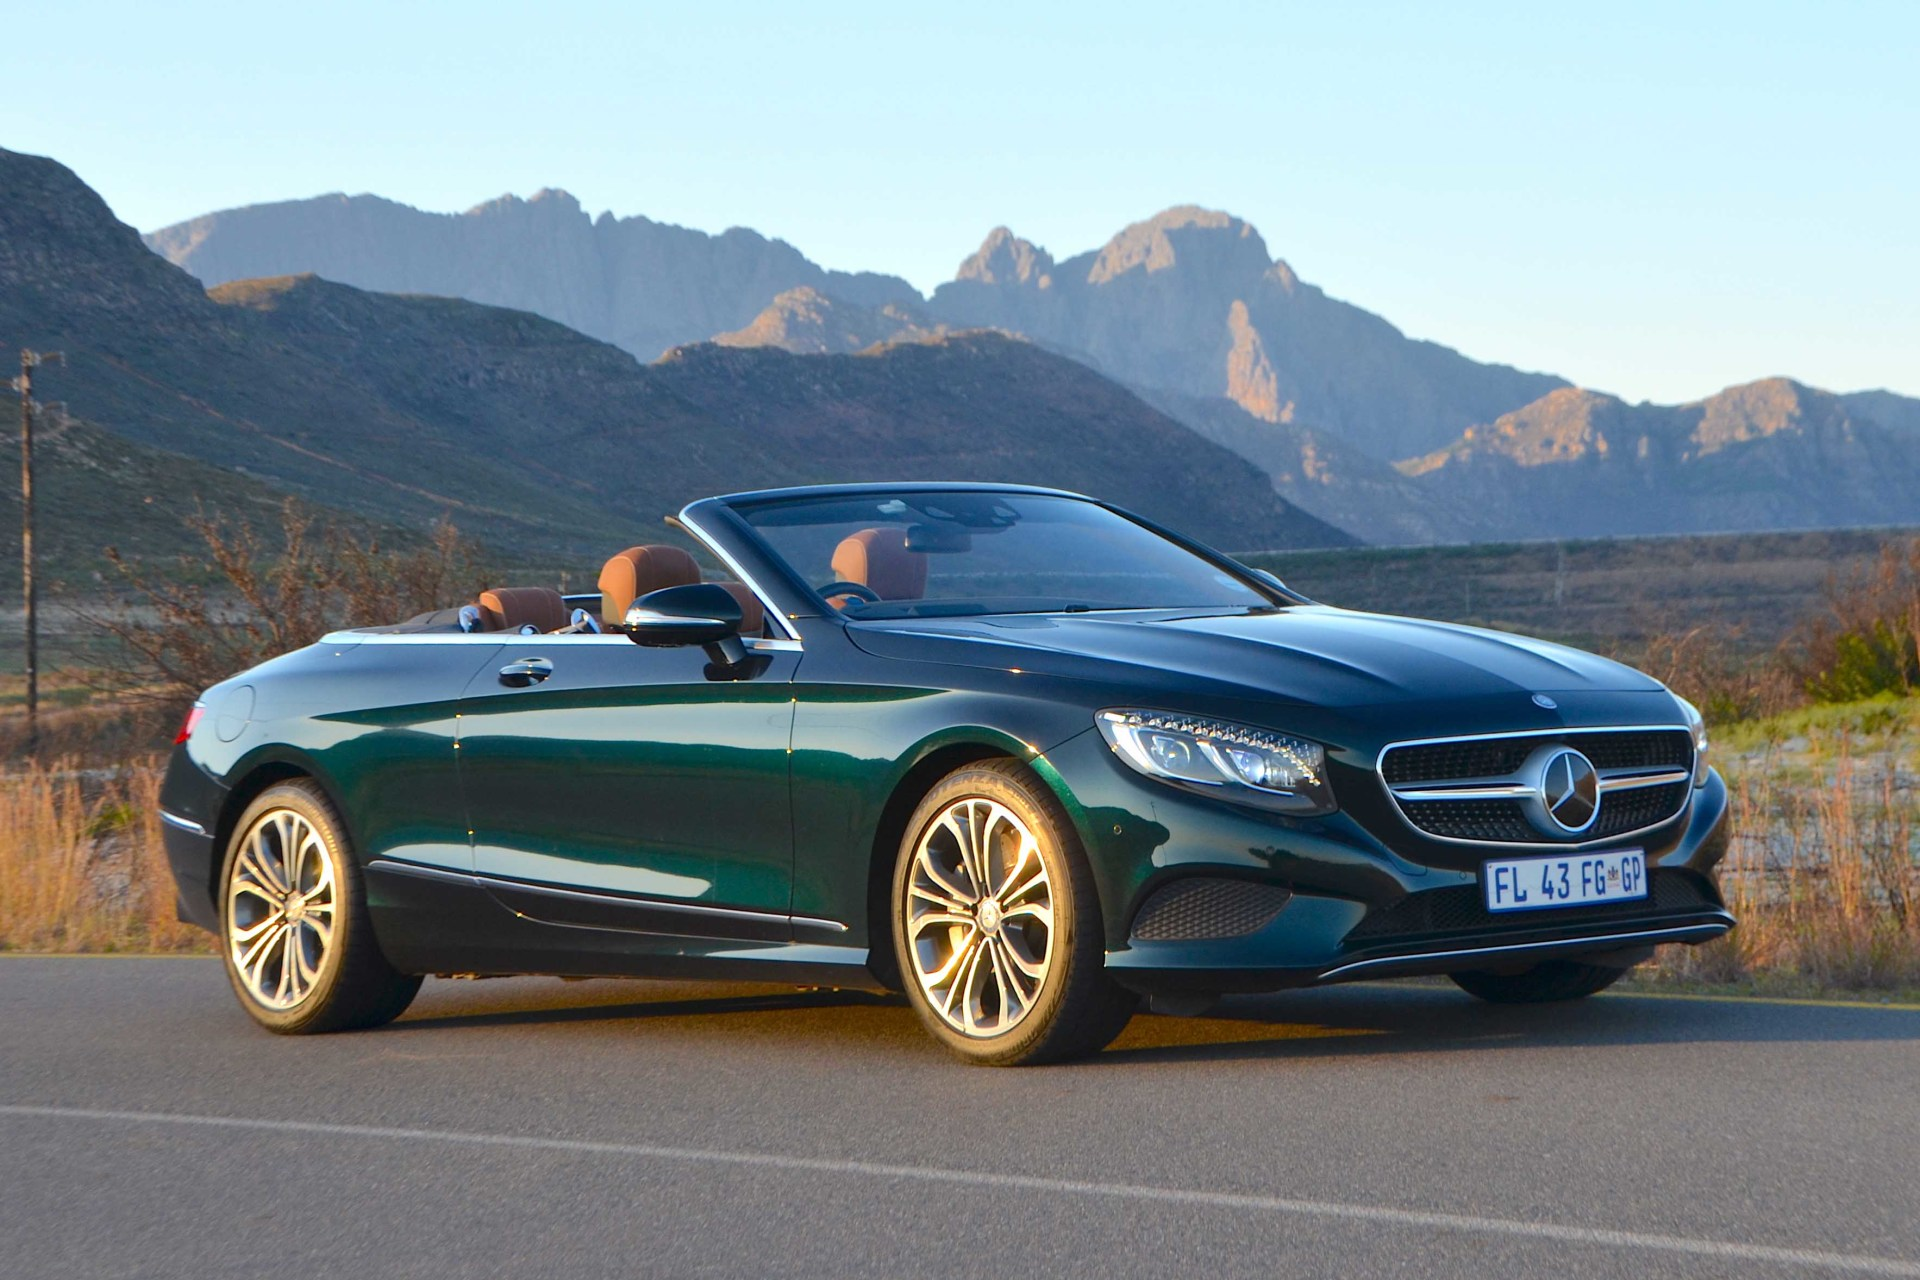 Mercedes-Benz S500 Convertible. Image – Michele Lupini